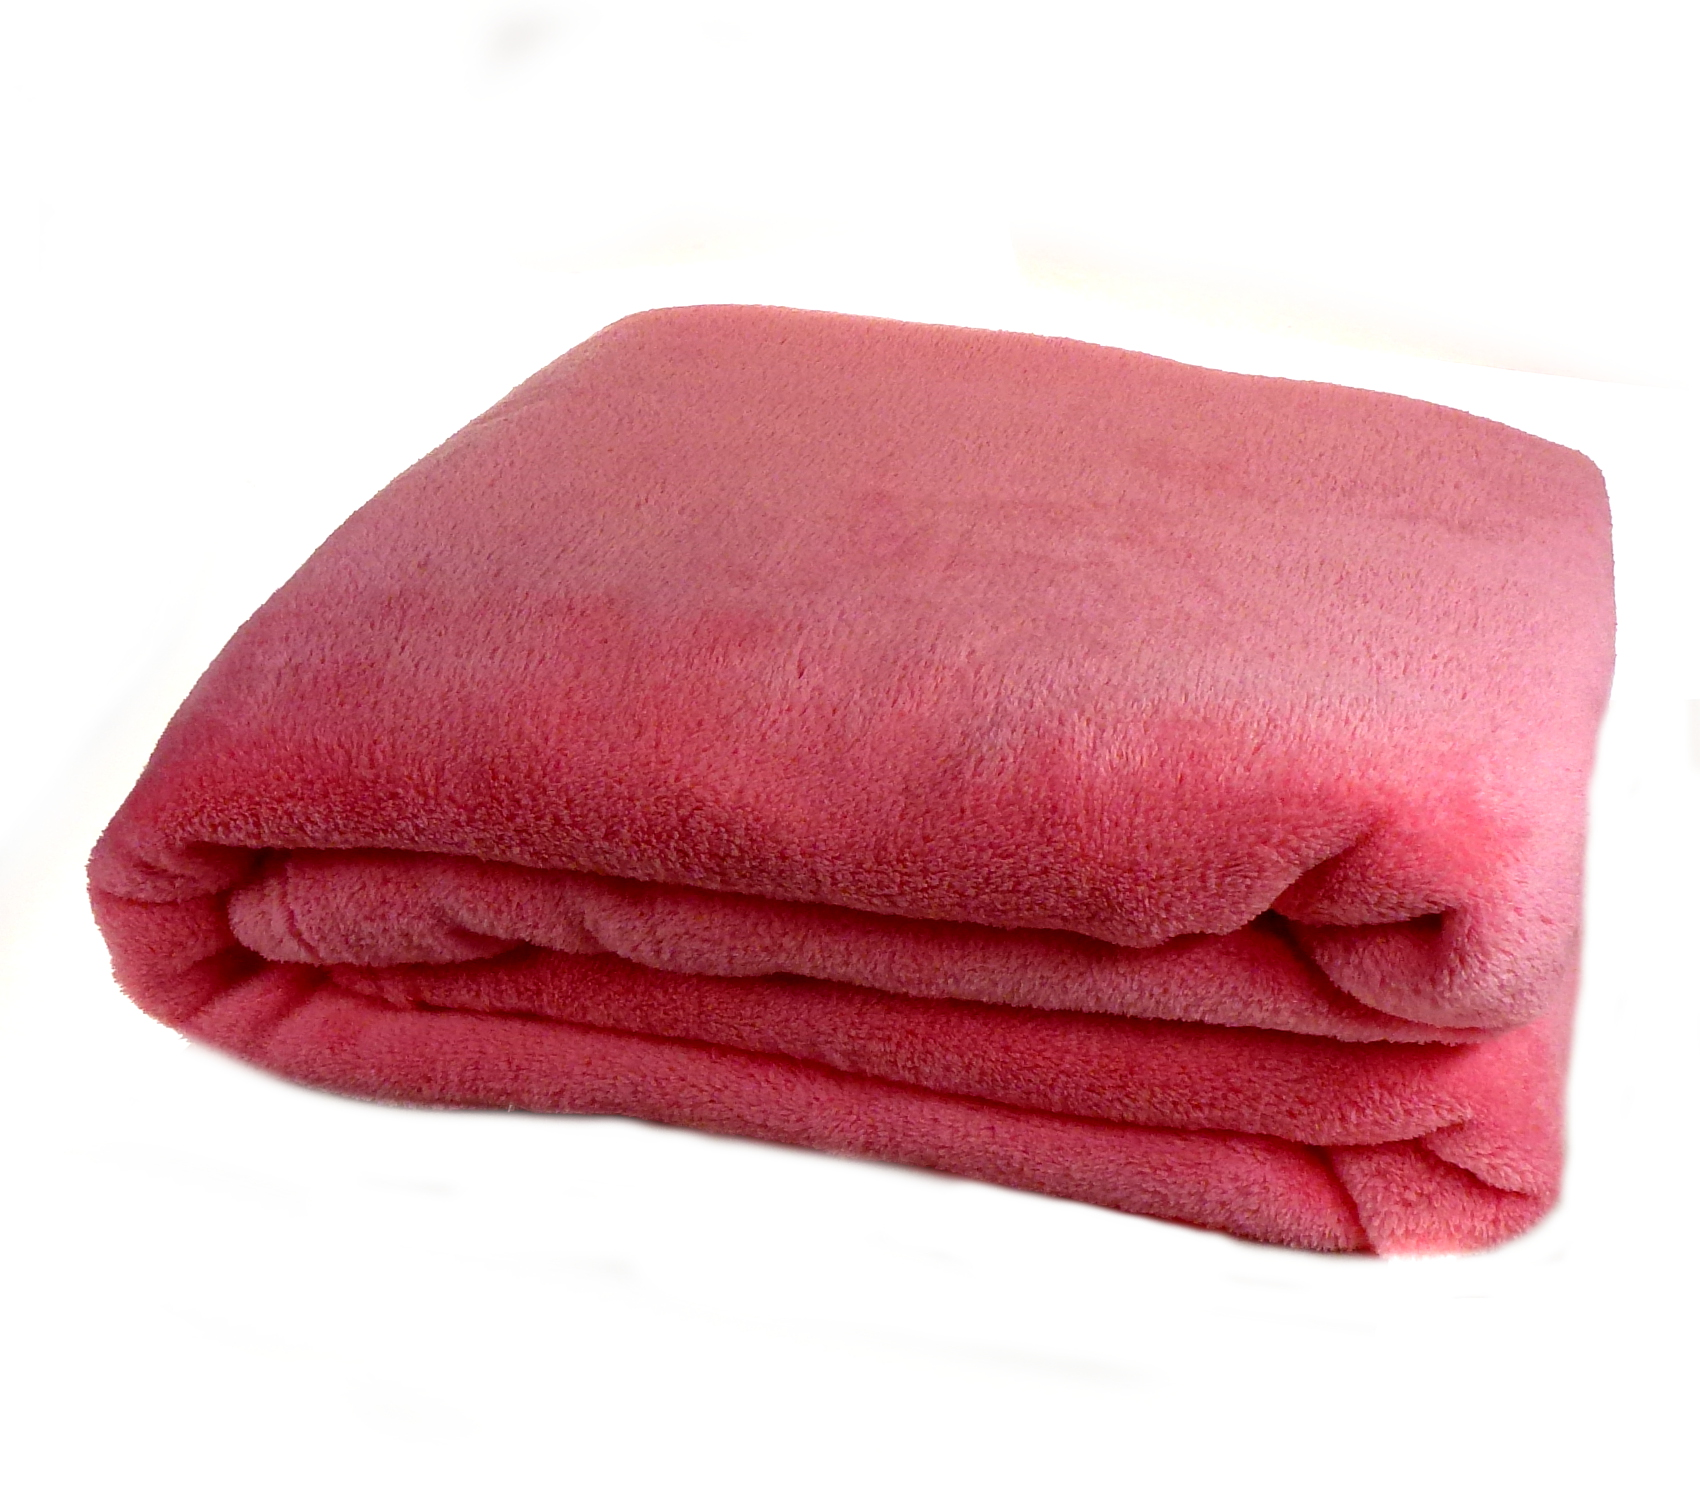 pink sofa throw how to fix a hole in leather blush soft coral fleece blanket luxury fleecy cosy